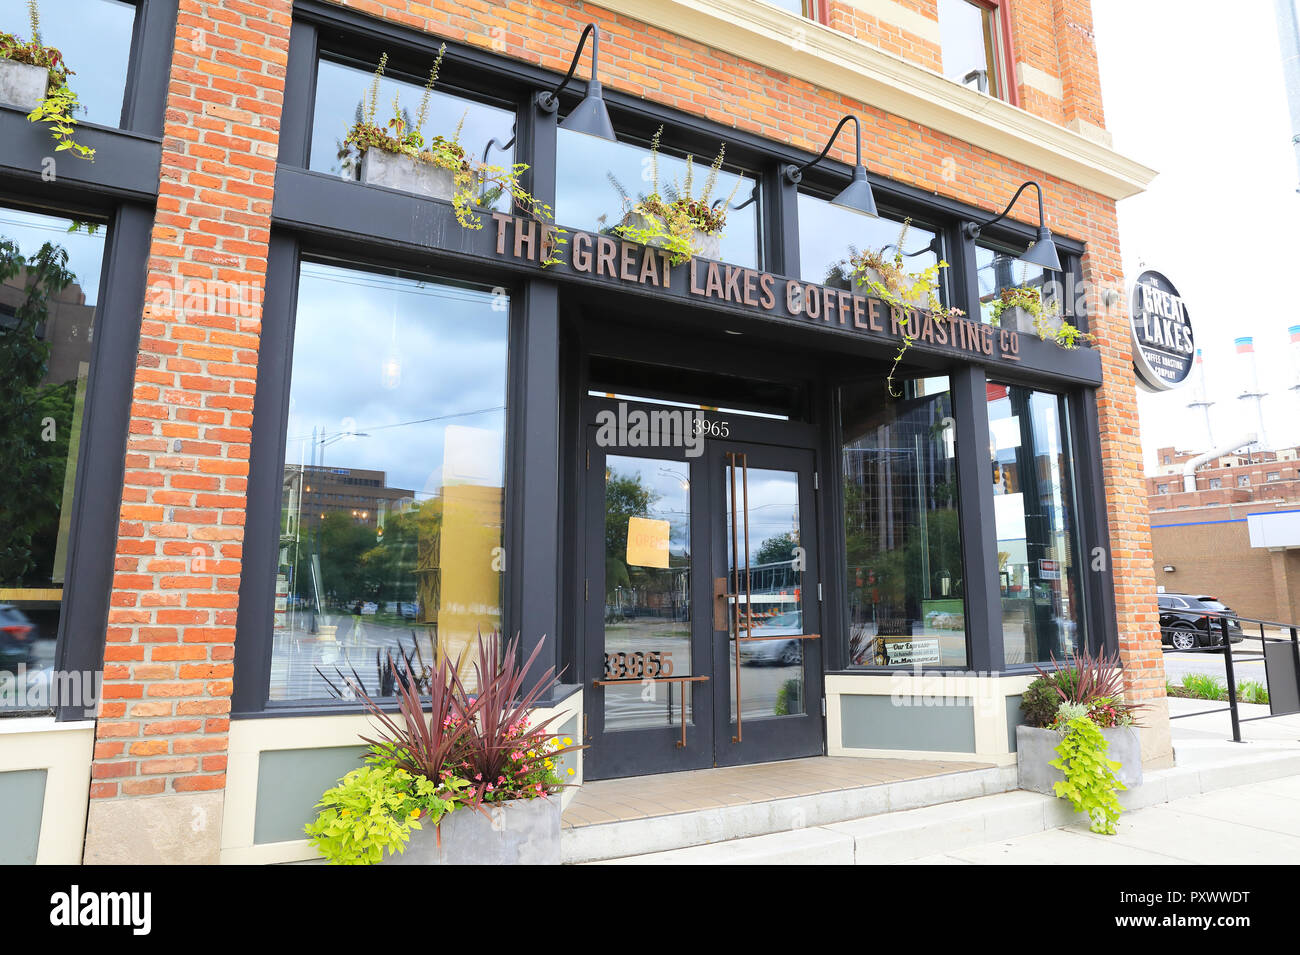 The Great Lakes Coffee Roasting Company on Woodward Avenue, in Michigan, in the USA - Stock Image